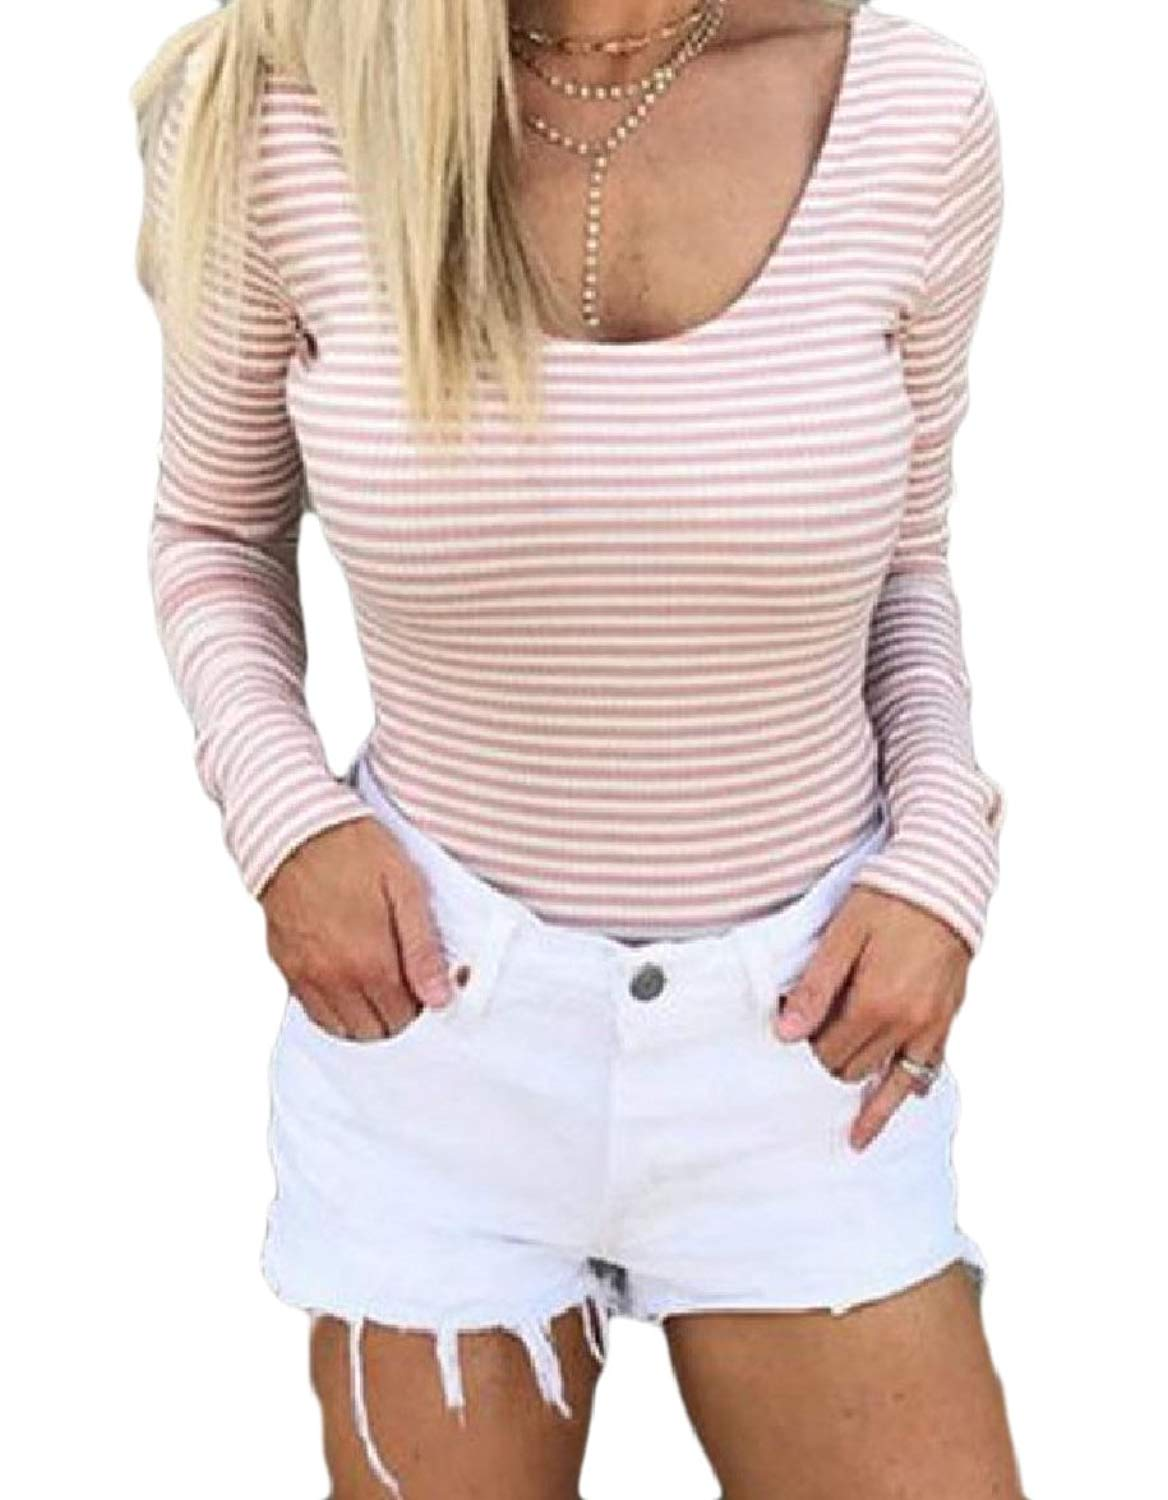 Zimaes-Women Bowknot Backless Skinny Crew Neck Long-Sleeve Pinstripe Sexy Tunic Top Shirts